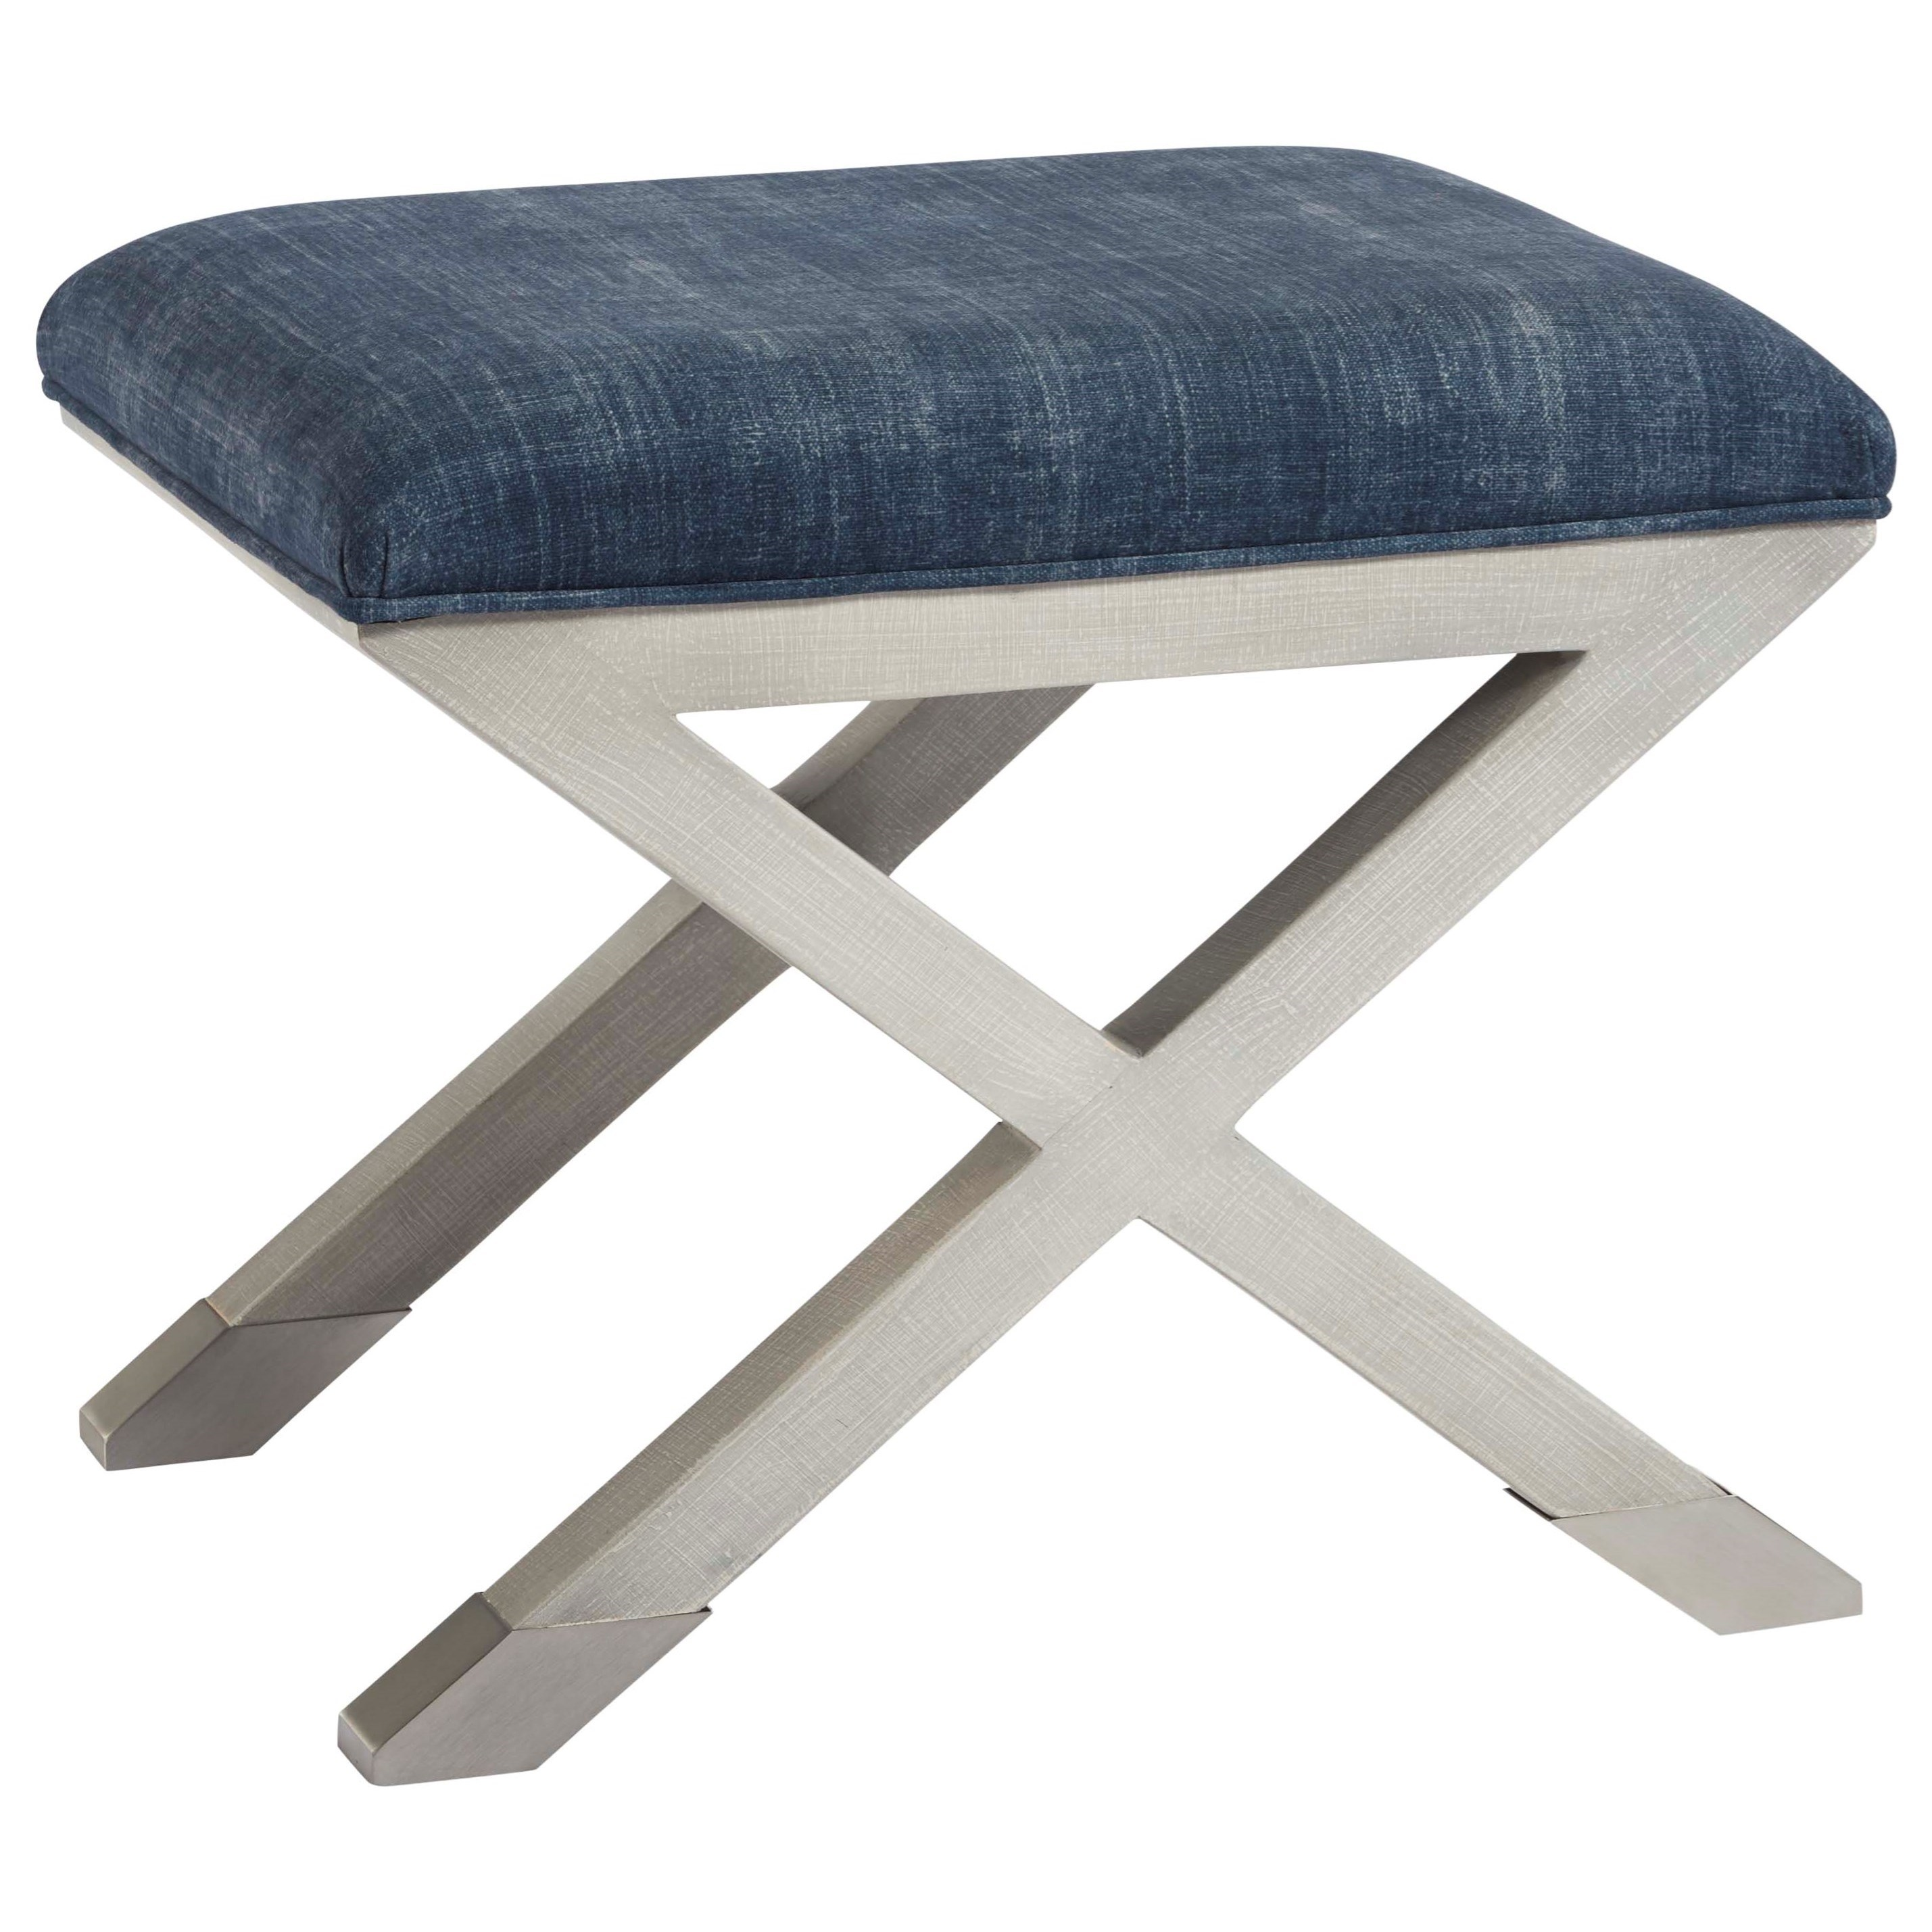 Coastal Living Home - Escape Bench by Universal at HomeWorld Furniture